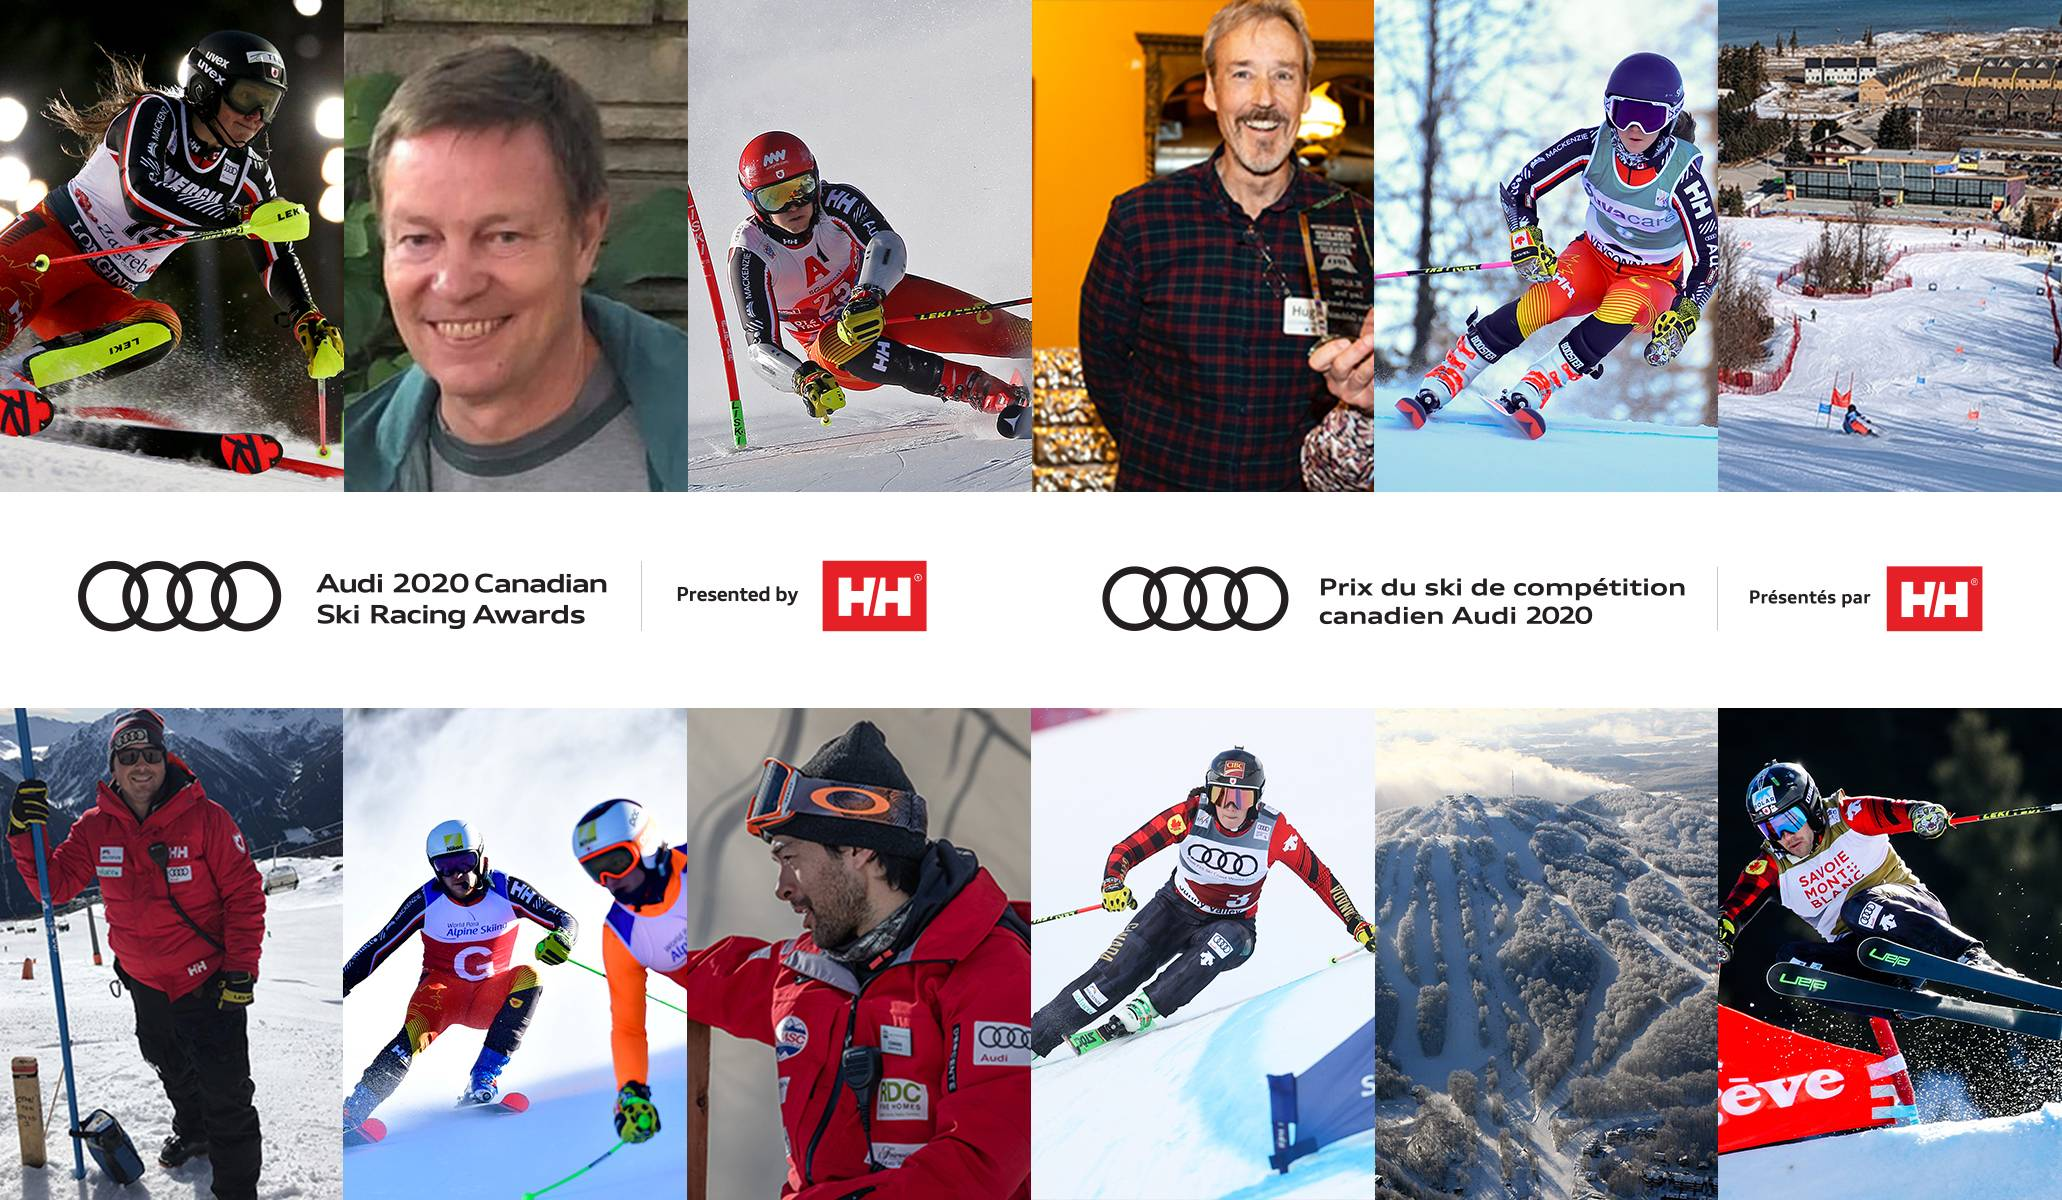 Winners announced for Audi 2020 Canadian Ski Racing Awards Presented by Helly Hansen